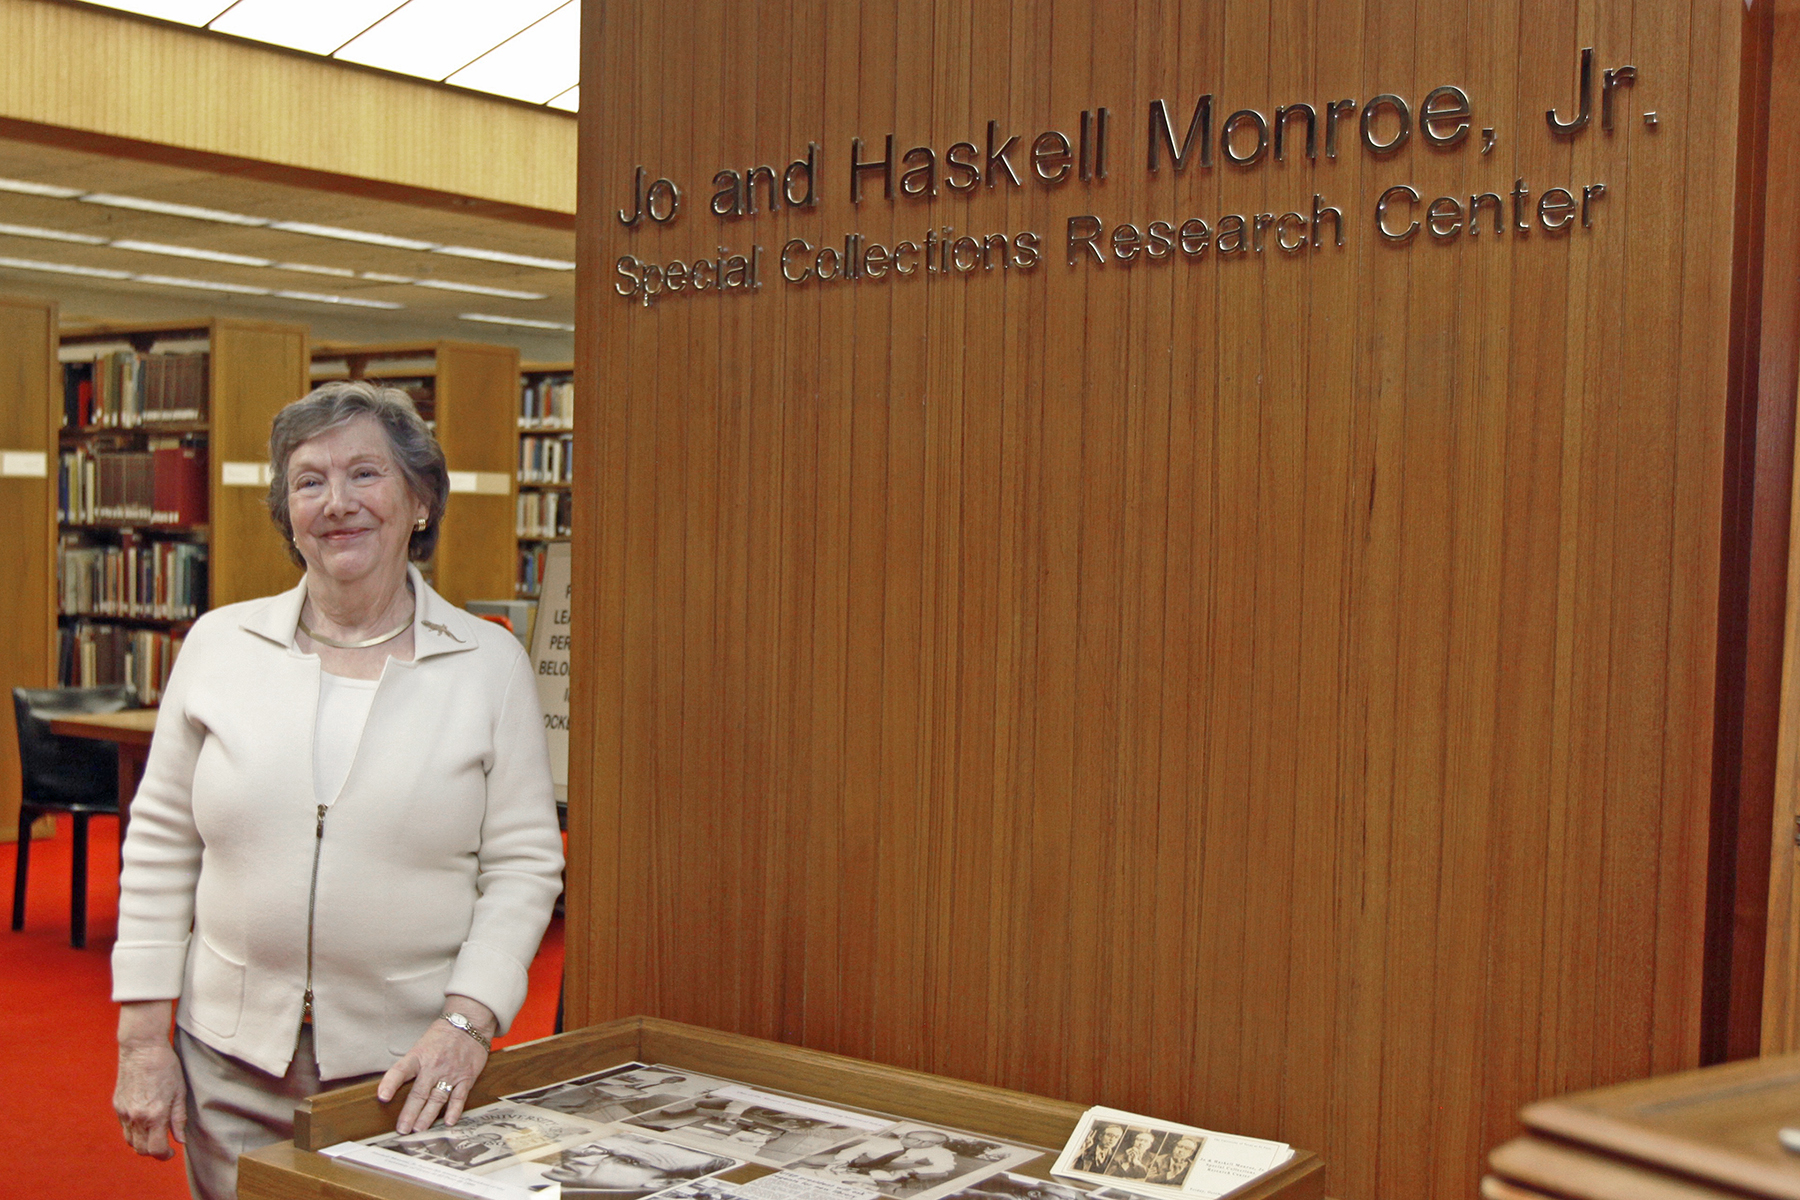 The University of Texas at El Paso's University Library in October 2016 held a reception in honor of former UTEP President Haskell Monroe Jr. and his wife, Jo Monroe, in recognition of their gift of $250,000 to the Library's Special Collections Department.  During the reception, the Research Room in Special Collections will officially change its name to the Jo and Haskell Monroe Jr. Special Collections Research Center.  Monroe Jr. is an educator and administrator who served as UTEP President from July 14, 1980, to June 30, 1987. During his tenure, he helped increase private financial support enabling the construction of the University Library and established the Junior Scholars Program that offered students the chance to take University courses for credit while still attending high school.  In 2013, the Monroe's established the Jo and Haskell Monroe Jr. Library Special Collections Endowment, which provides a permanent source of support to ensure that critical research is possible through the use of the archives of the University Library.